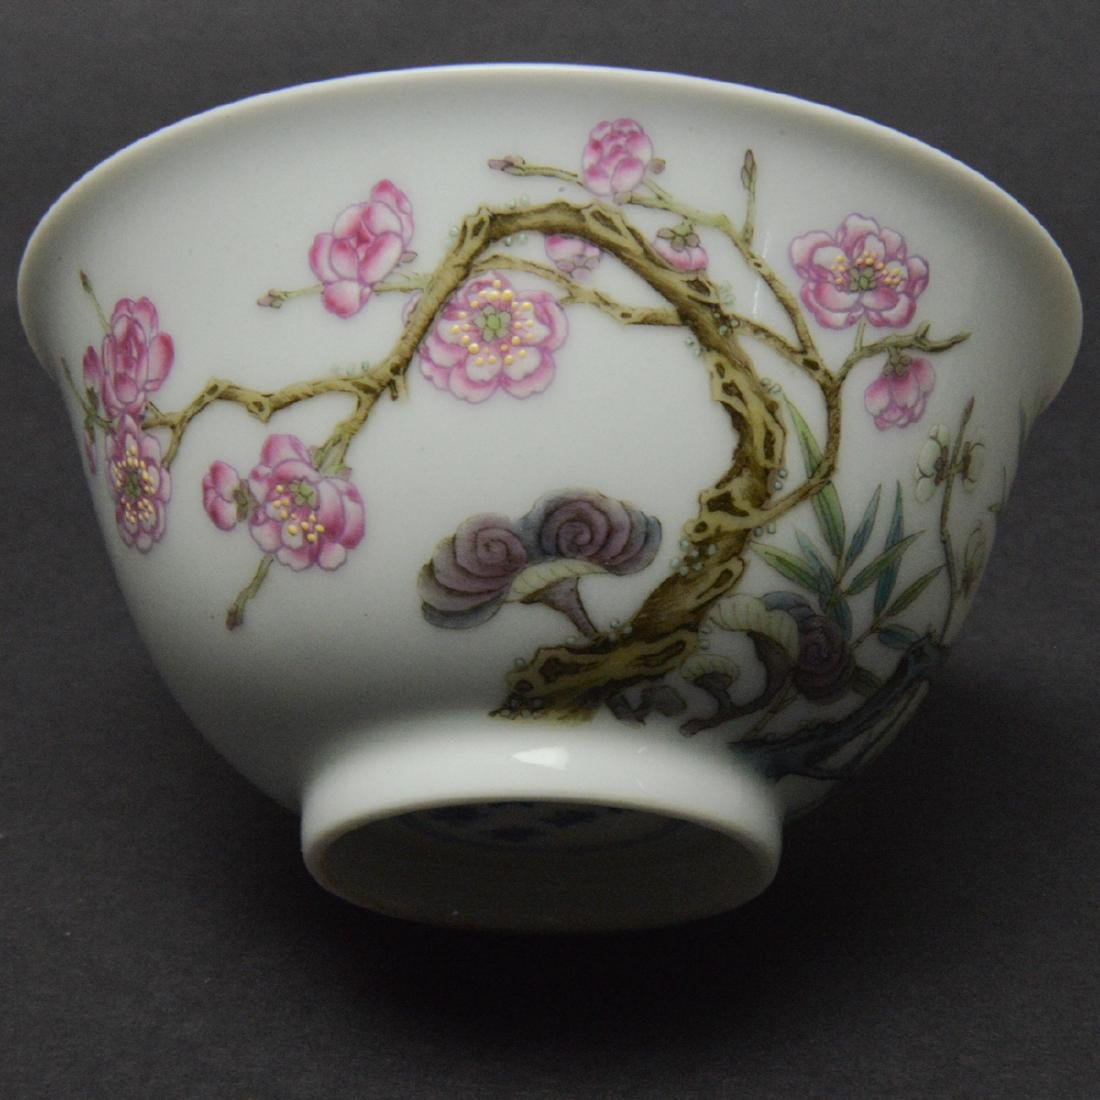 CHINESE FAMILLE ROSE PORCELAIN CUP - 5